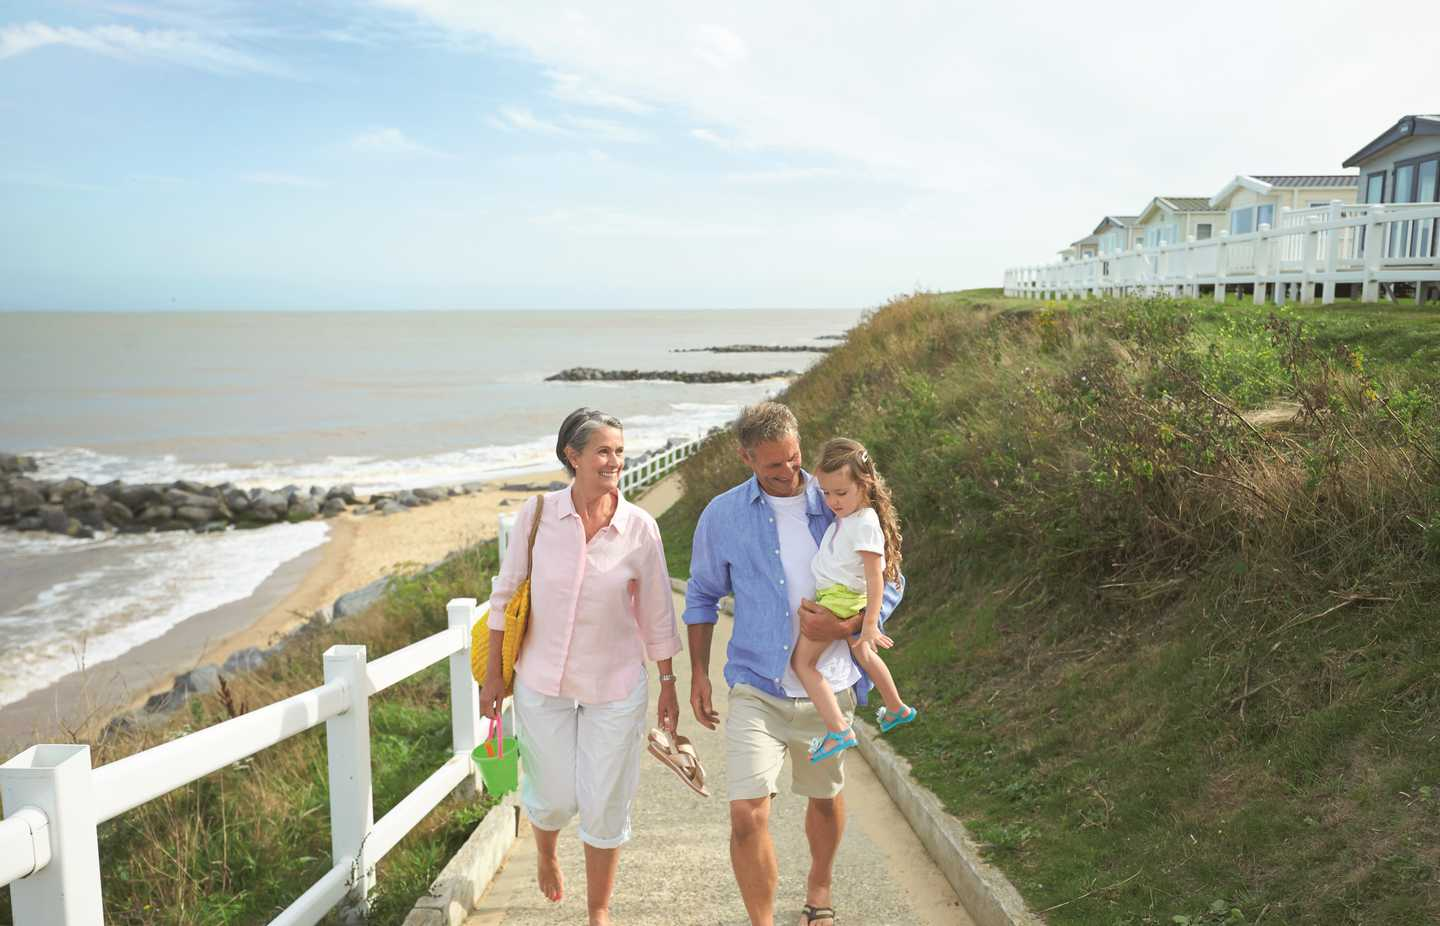 Owners walking up from the beach at Hopton